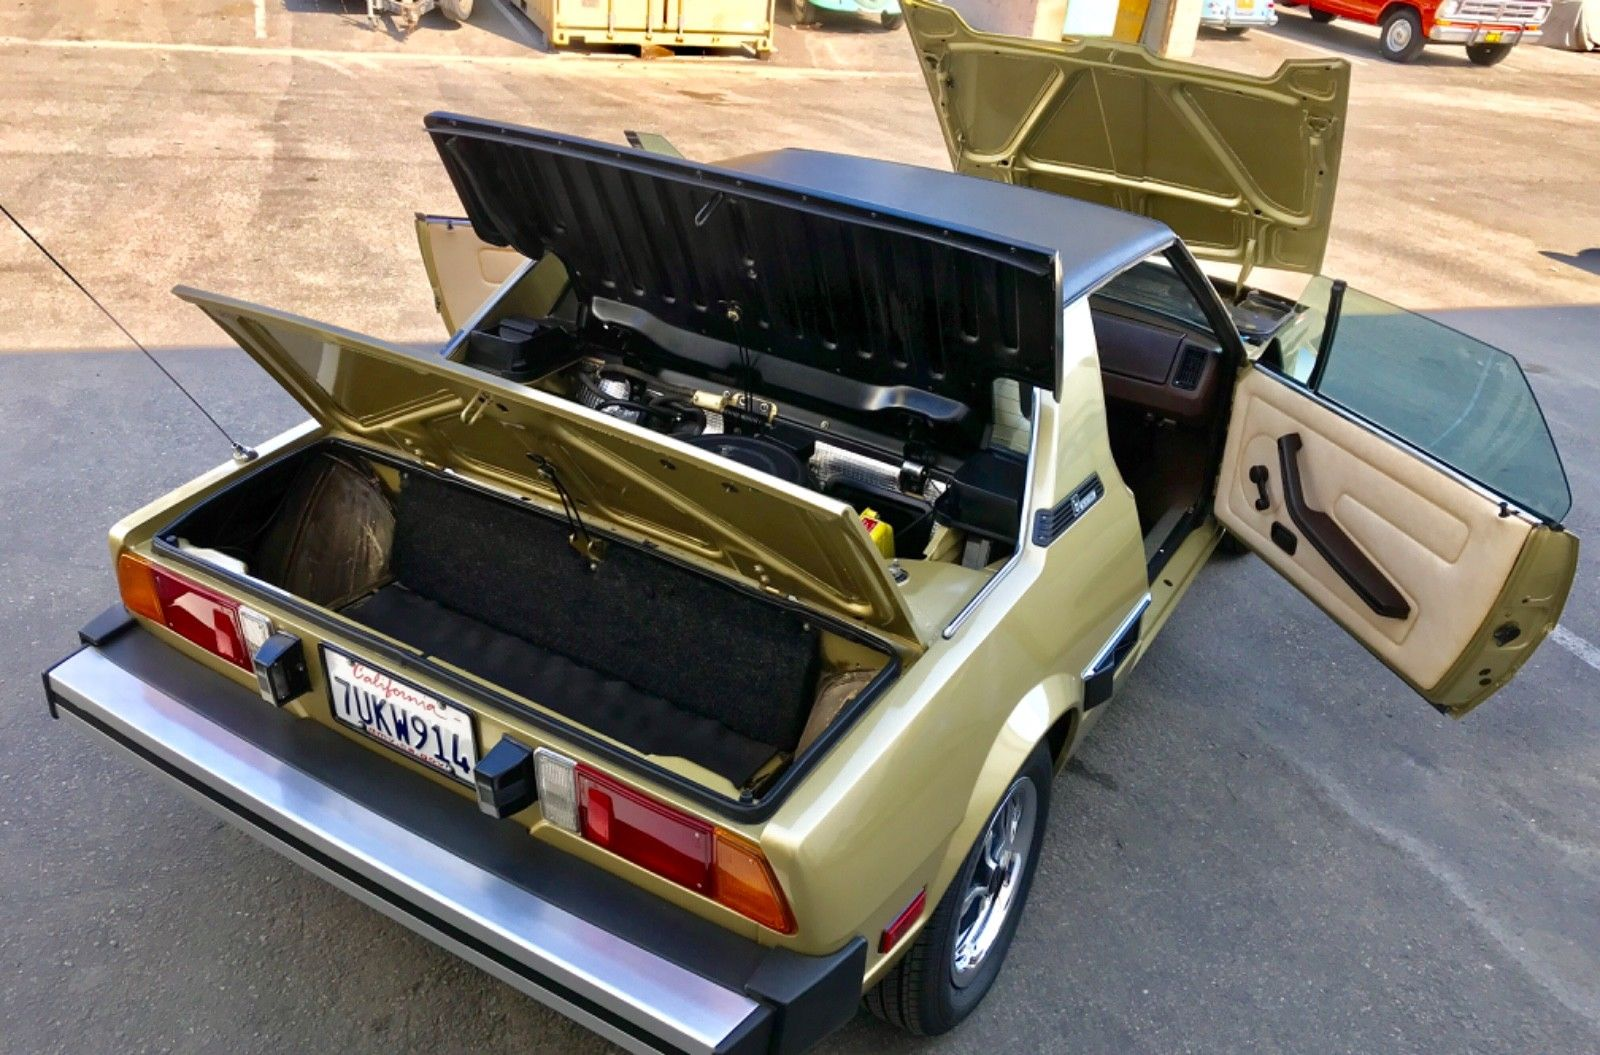 1979 Fiat X1/9 engine cover and deck lid